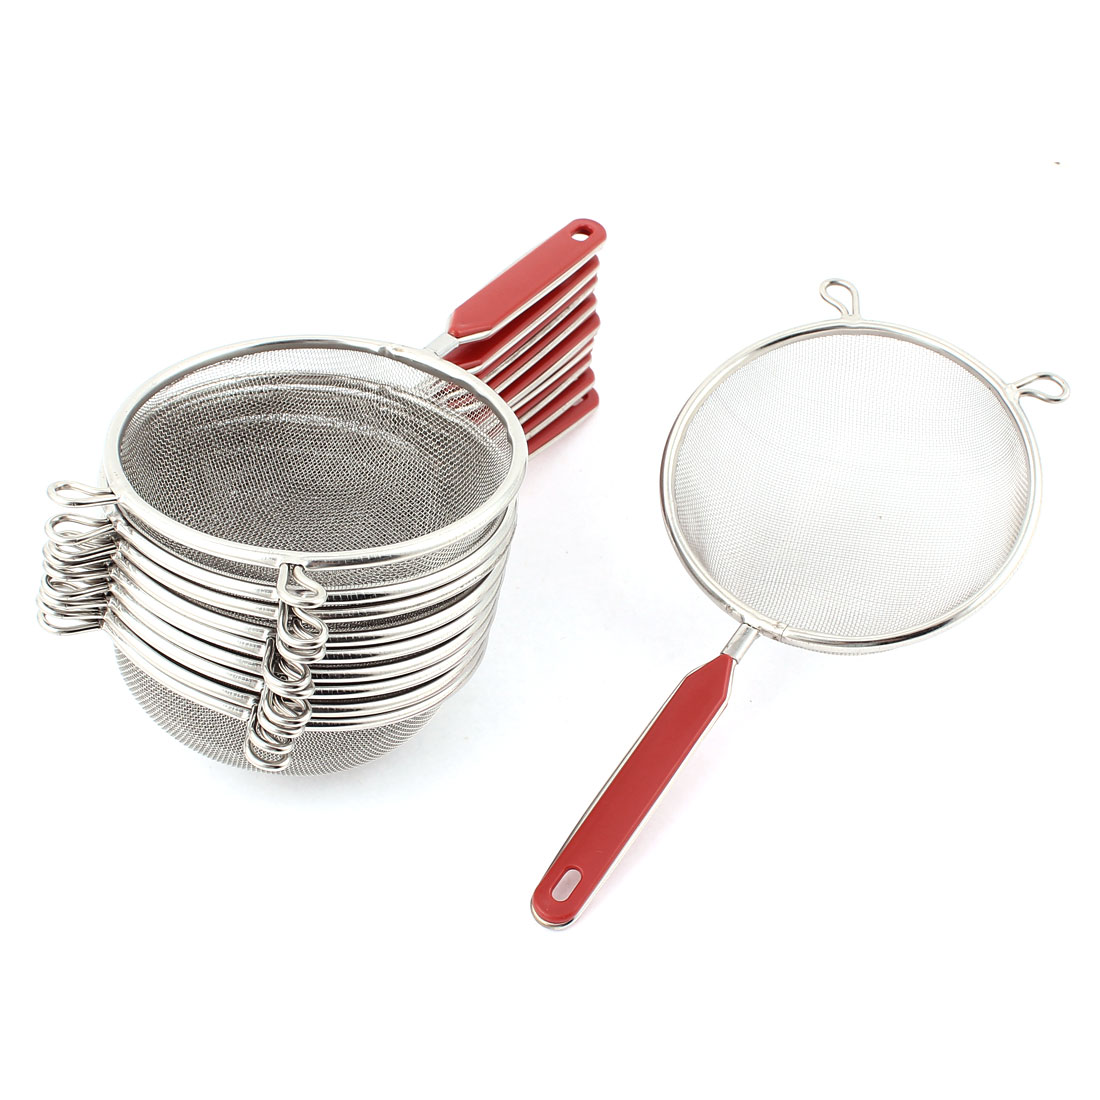 Kitchen Plastic Grip Stainless Steel 10cm Dia Mesh Ladle Strainer Filter 10pcs